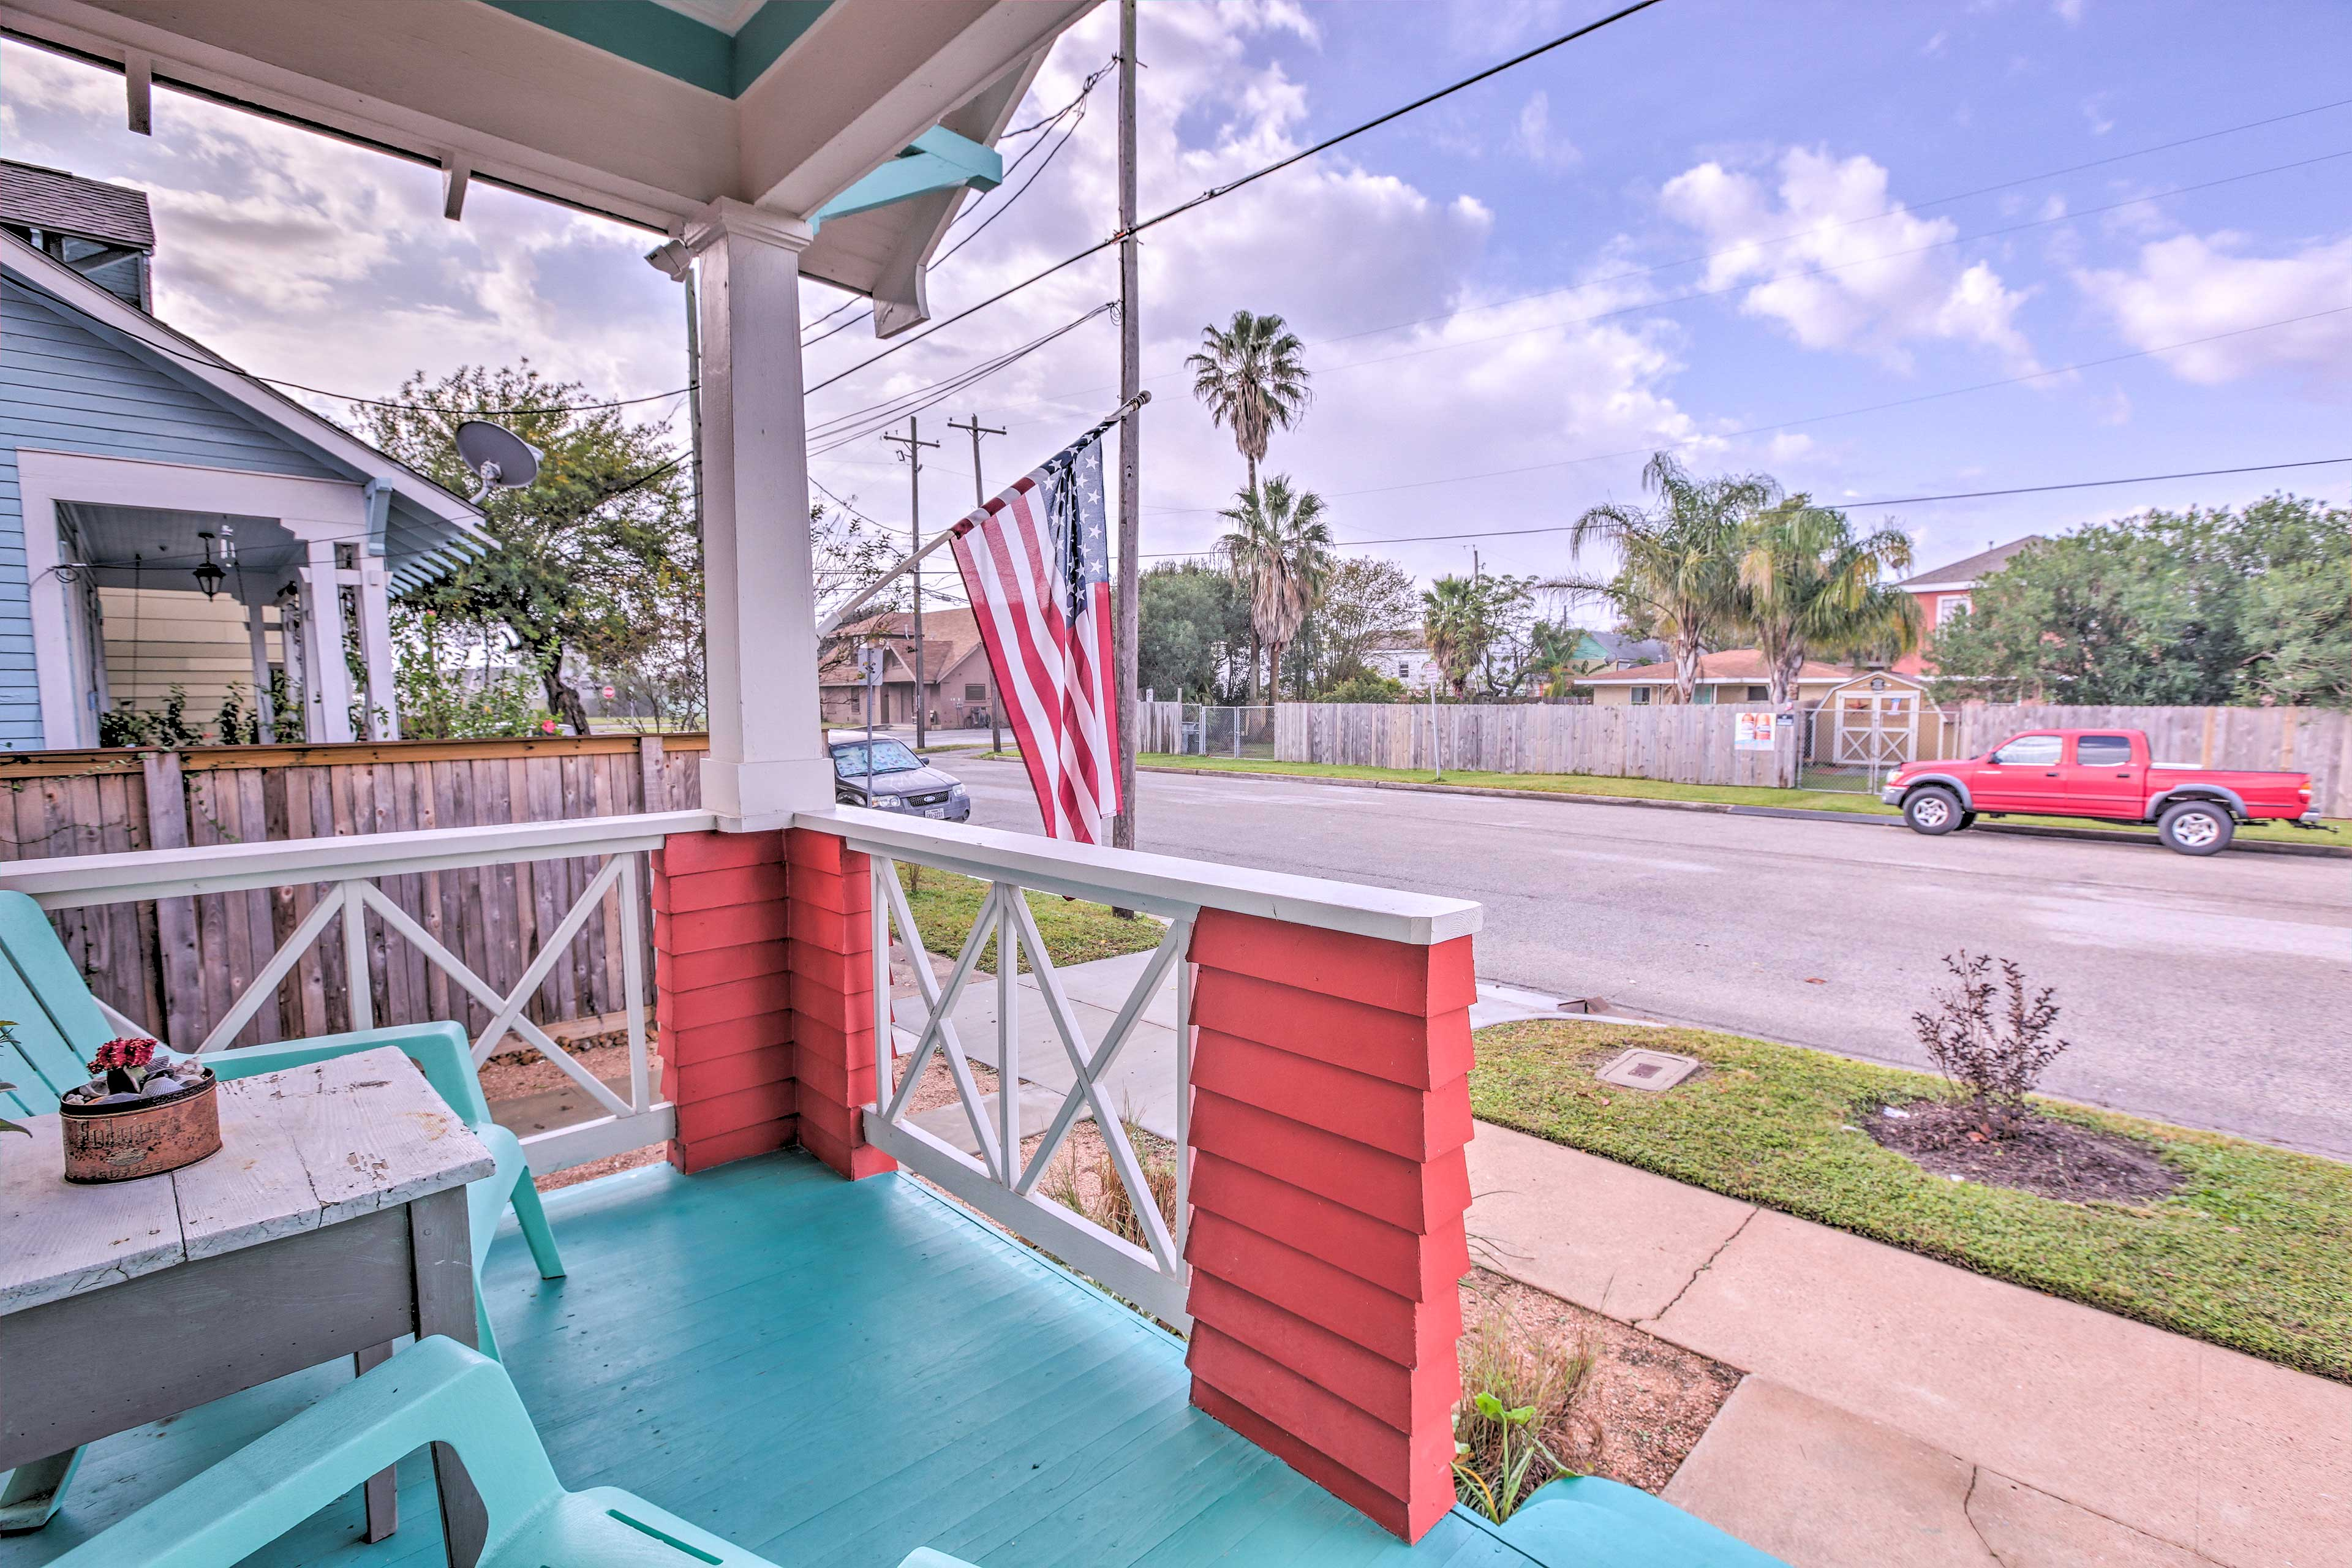 Enjoy your favorite drink on the front porch as you relax in the outdoor chairs.